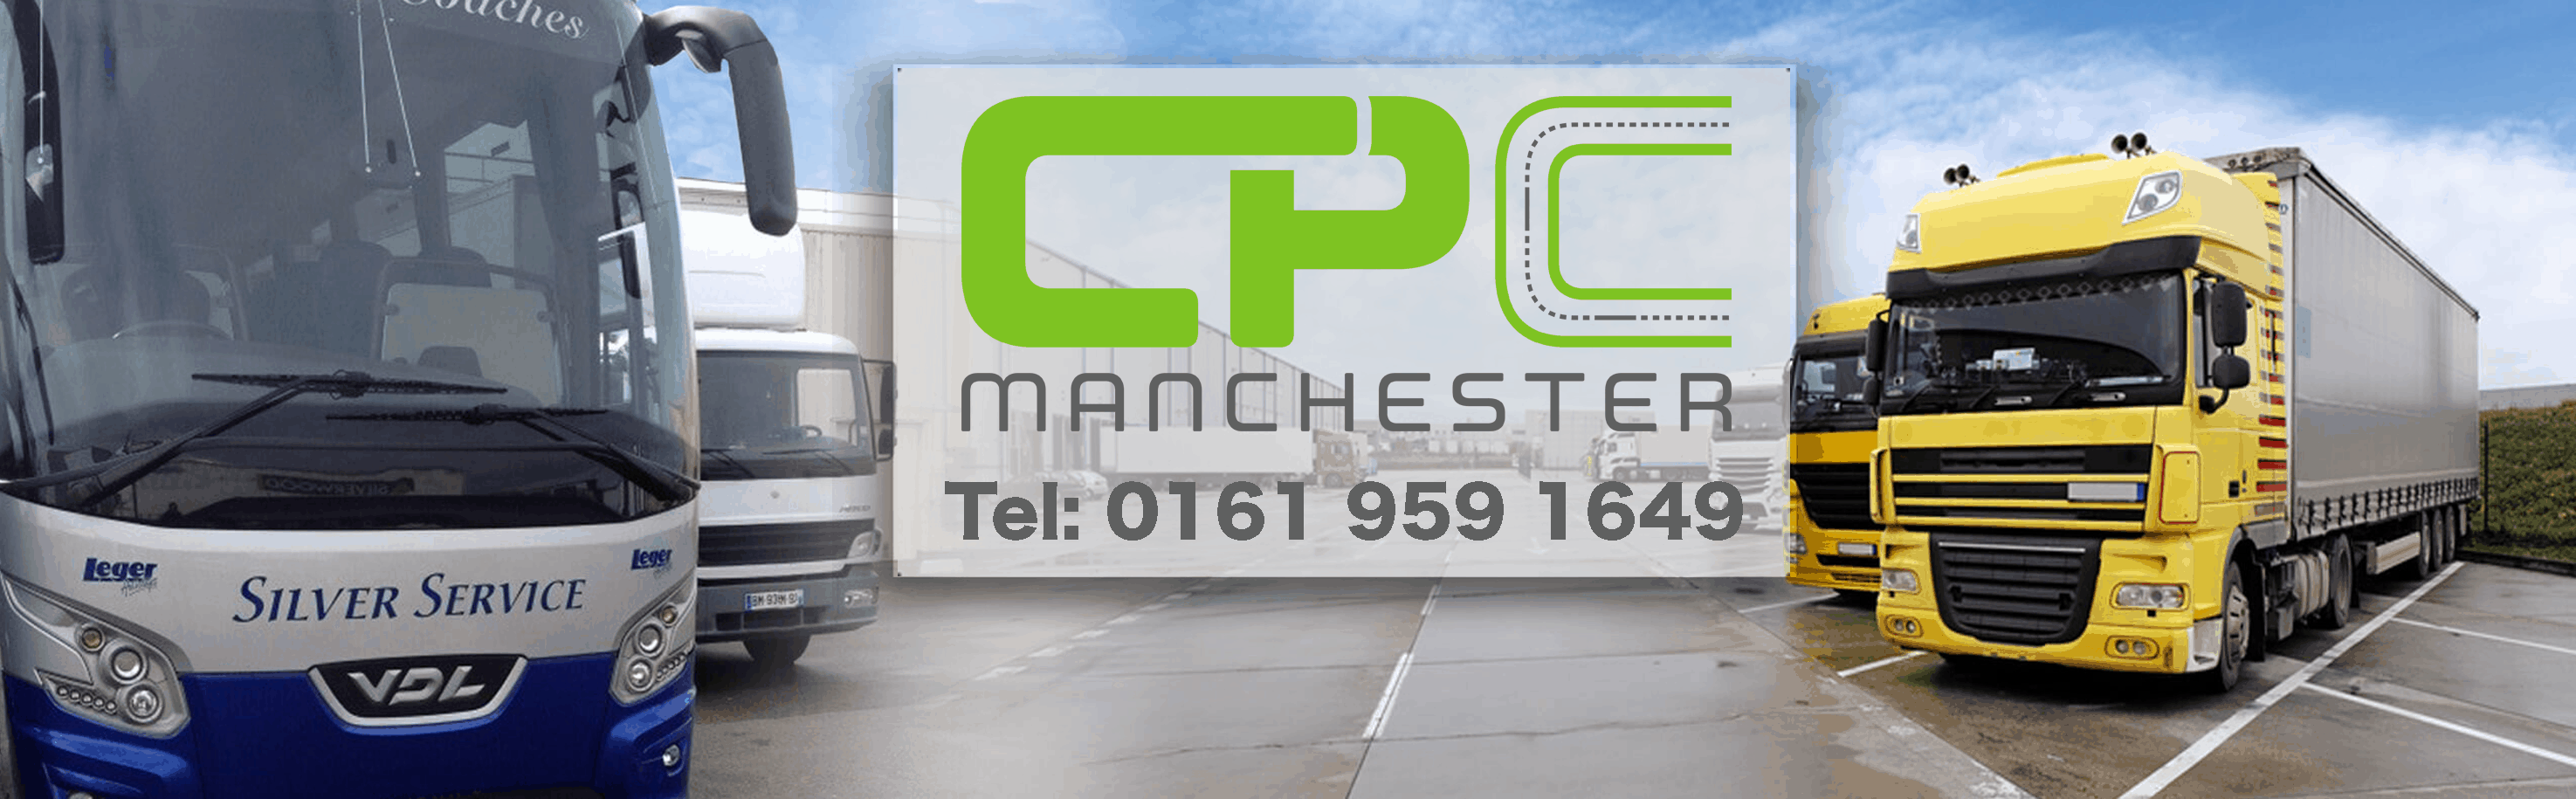 Driver Cpc Manchester Banner